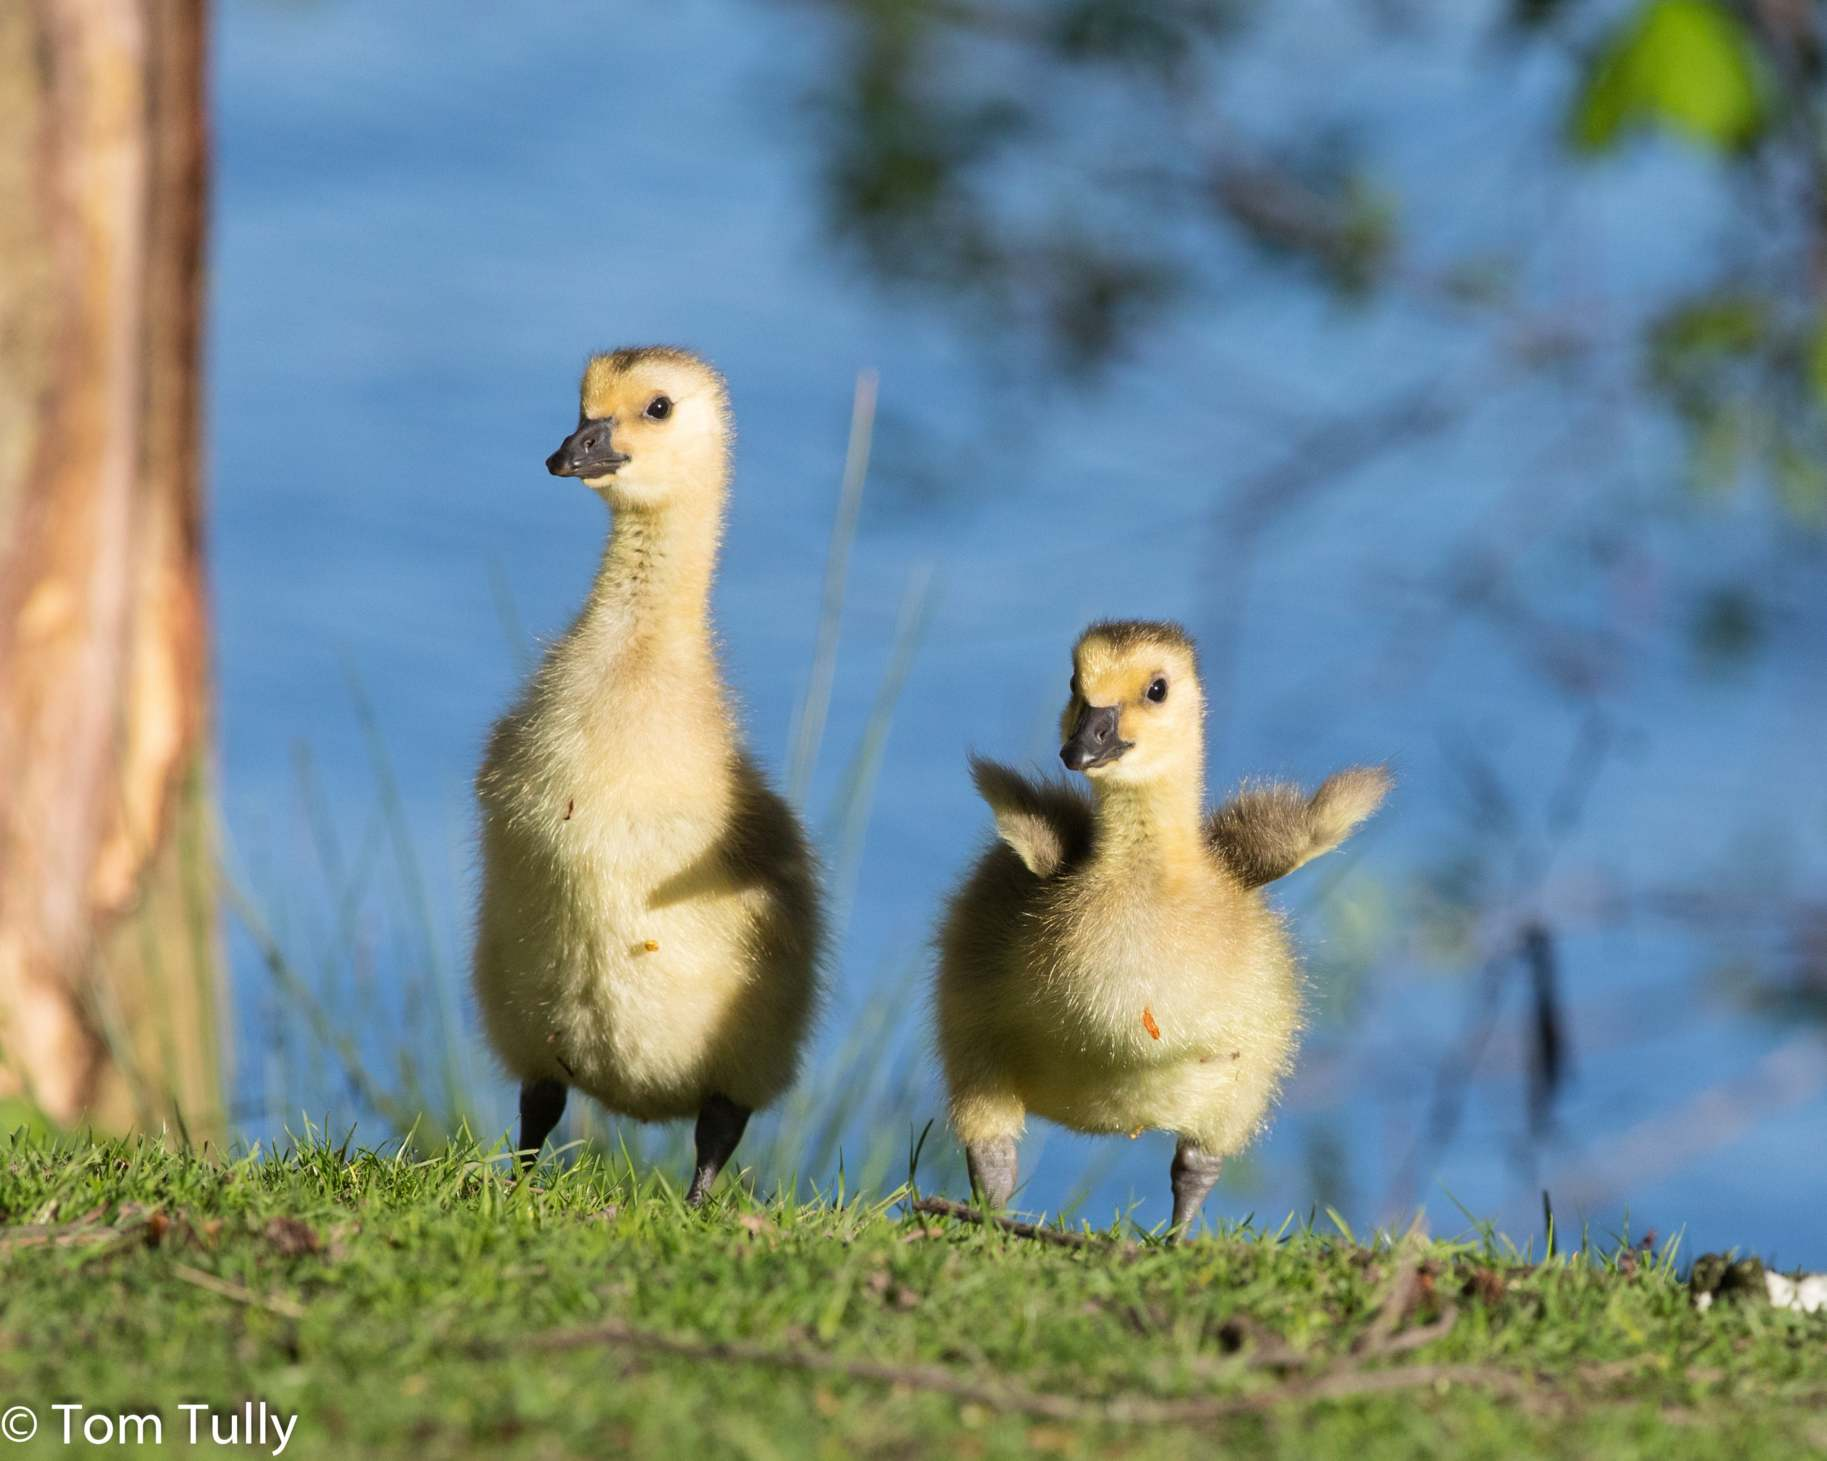 Cute ducklings! Thank you Tom Tully for sharing this image.